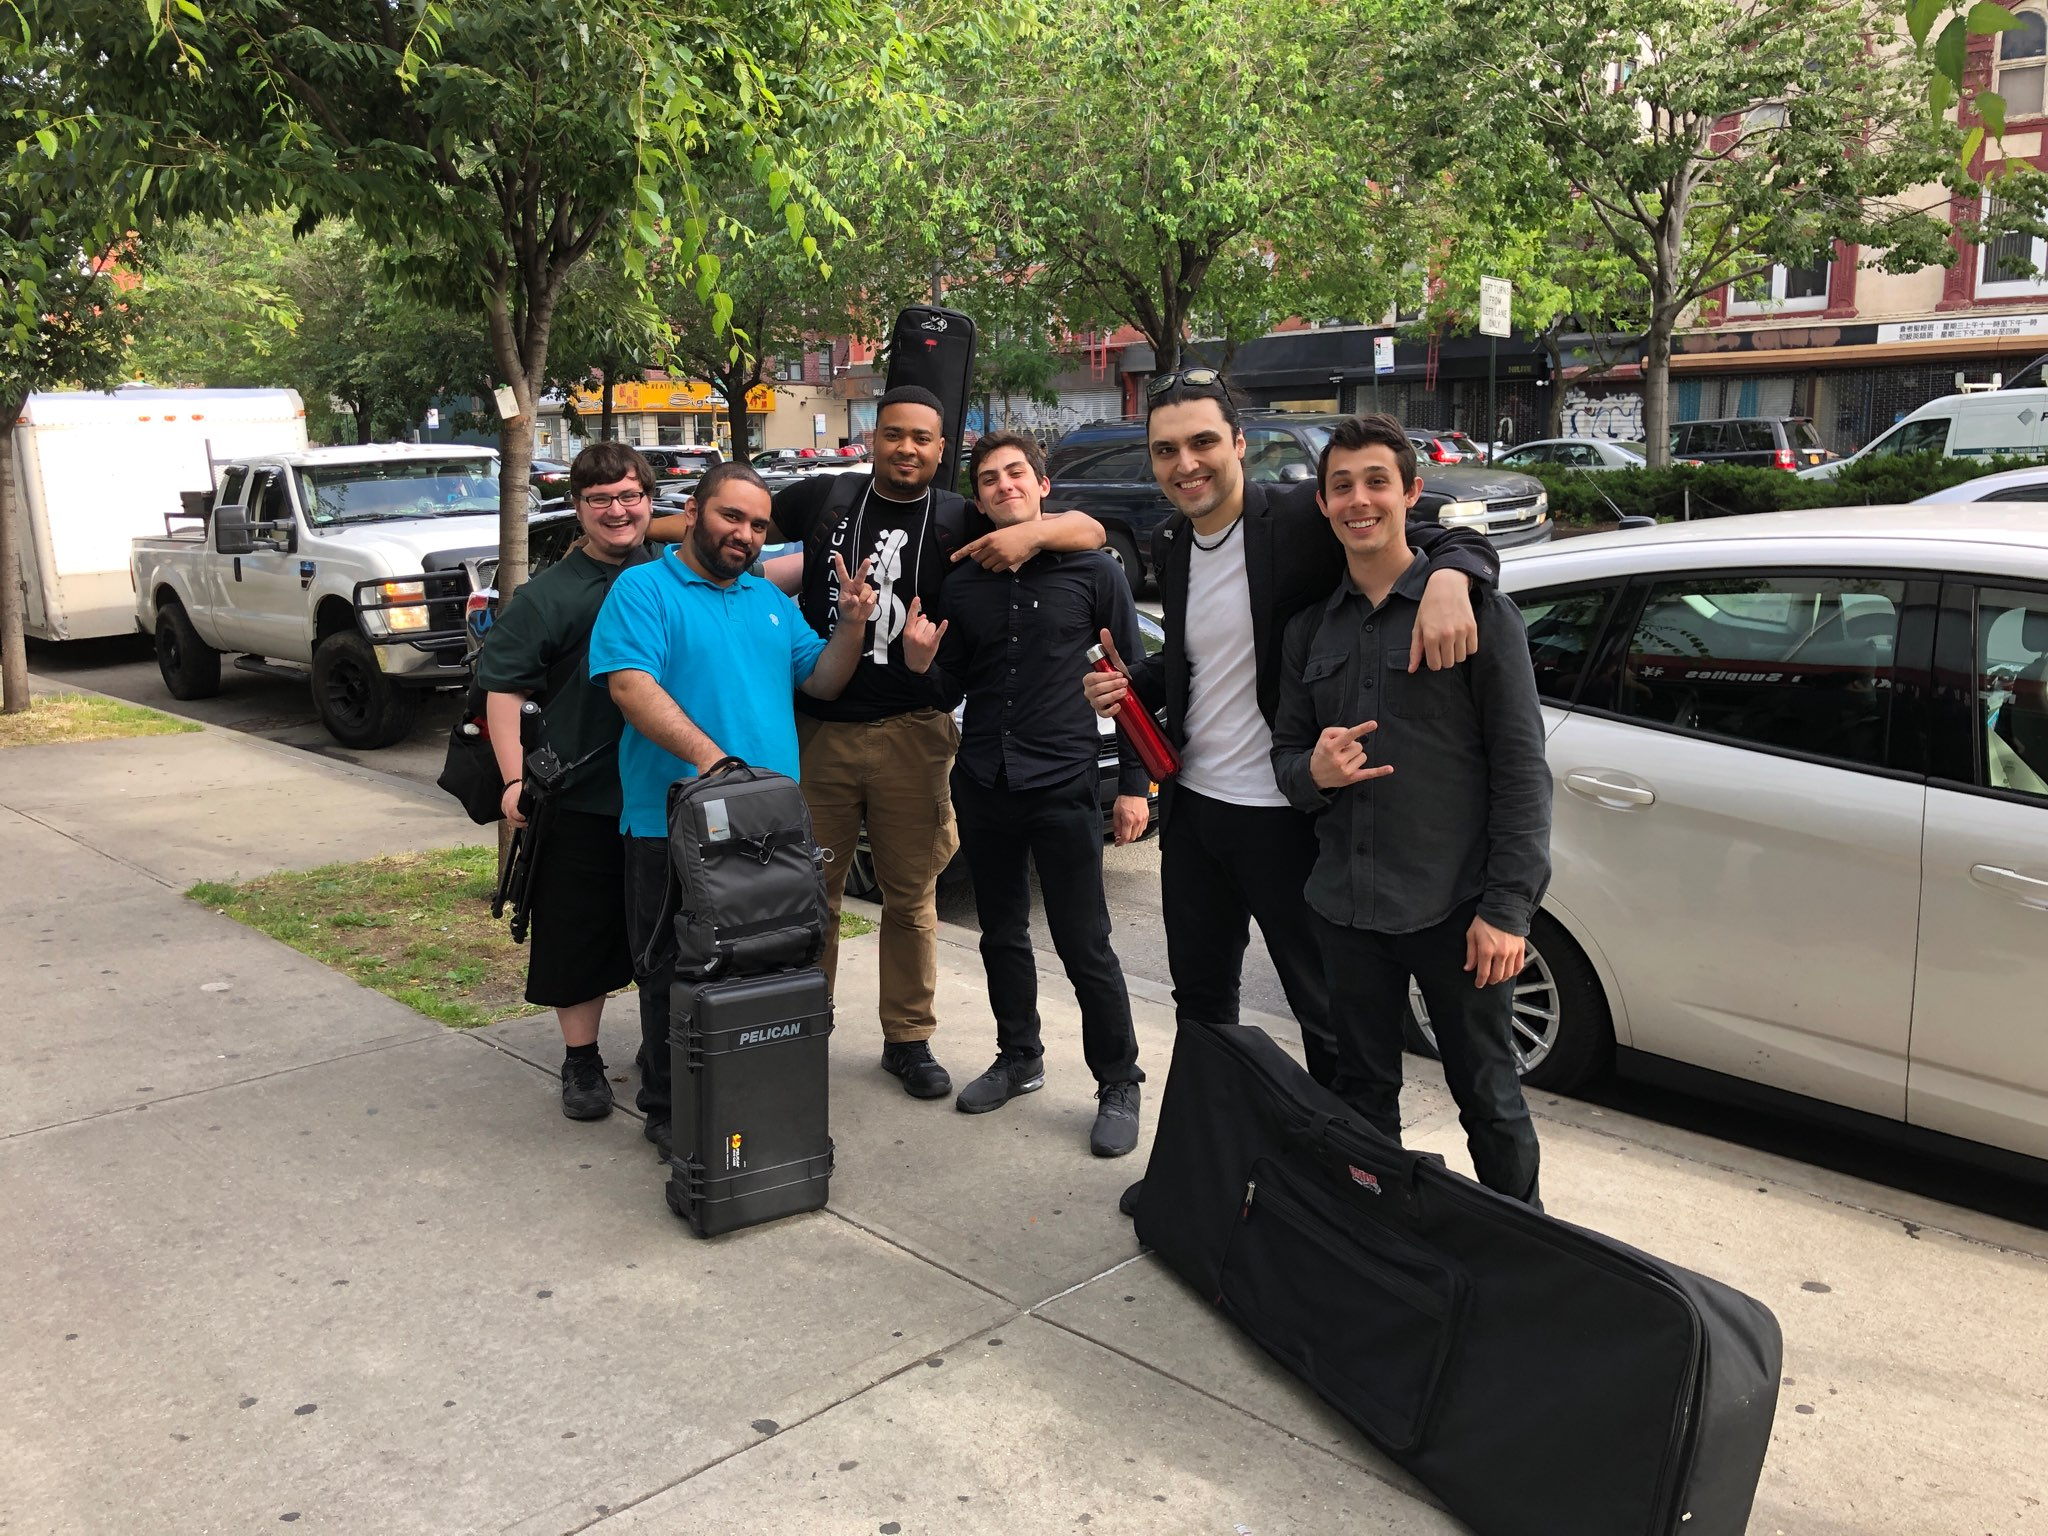 THE CREW (from L to R): Michael Scarnati (video), Jorge Almodovar (video), SupaBass (bass), Antwon Dixon (drums), theRave, Dr. Pez (keyboards) [photo: Lou Holtzman]